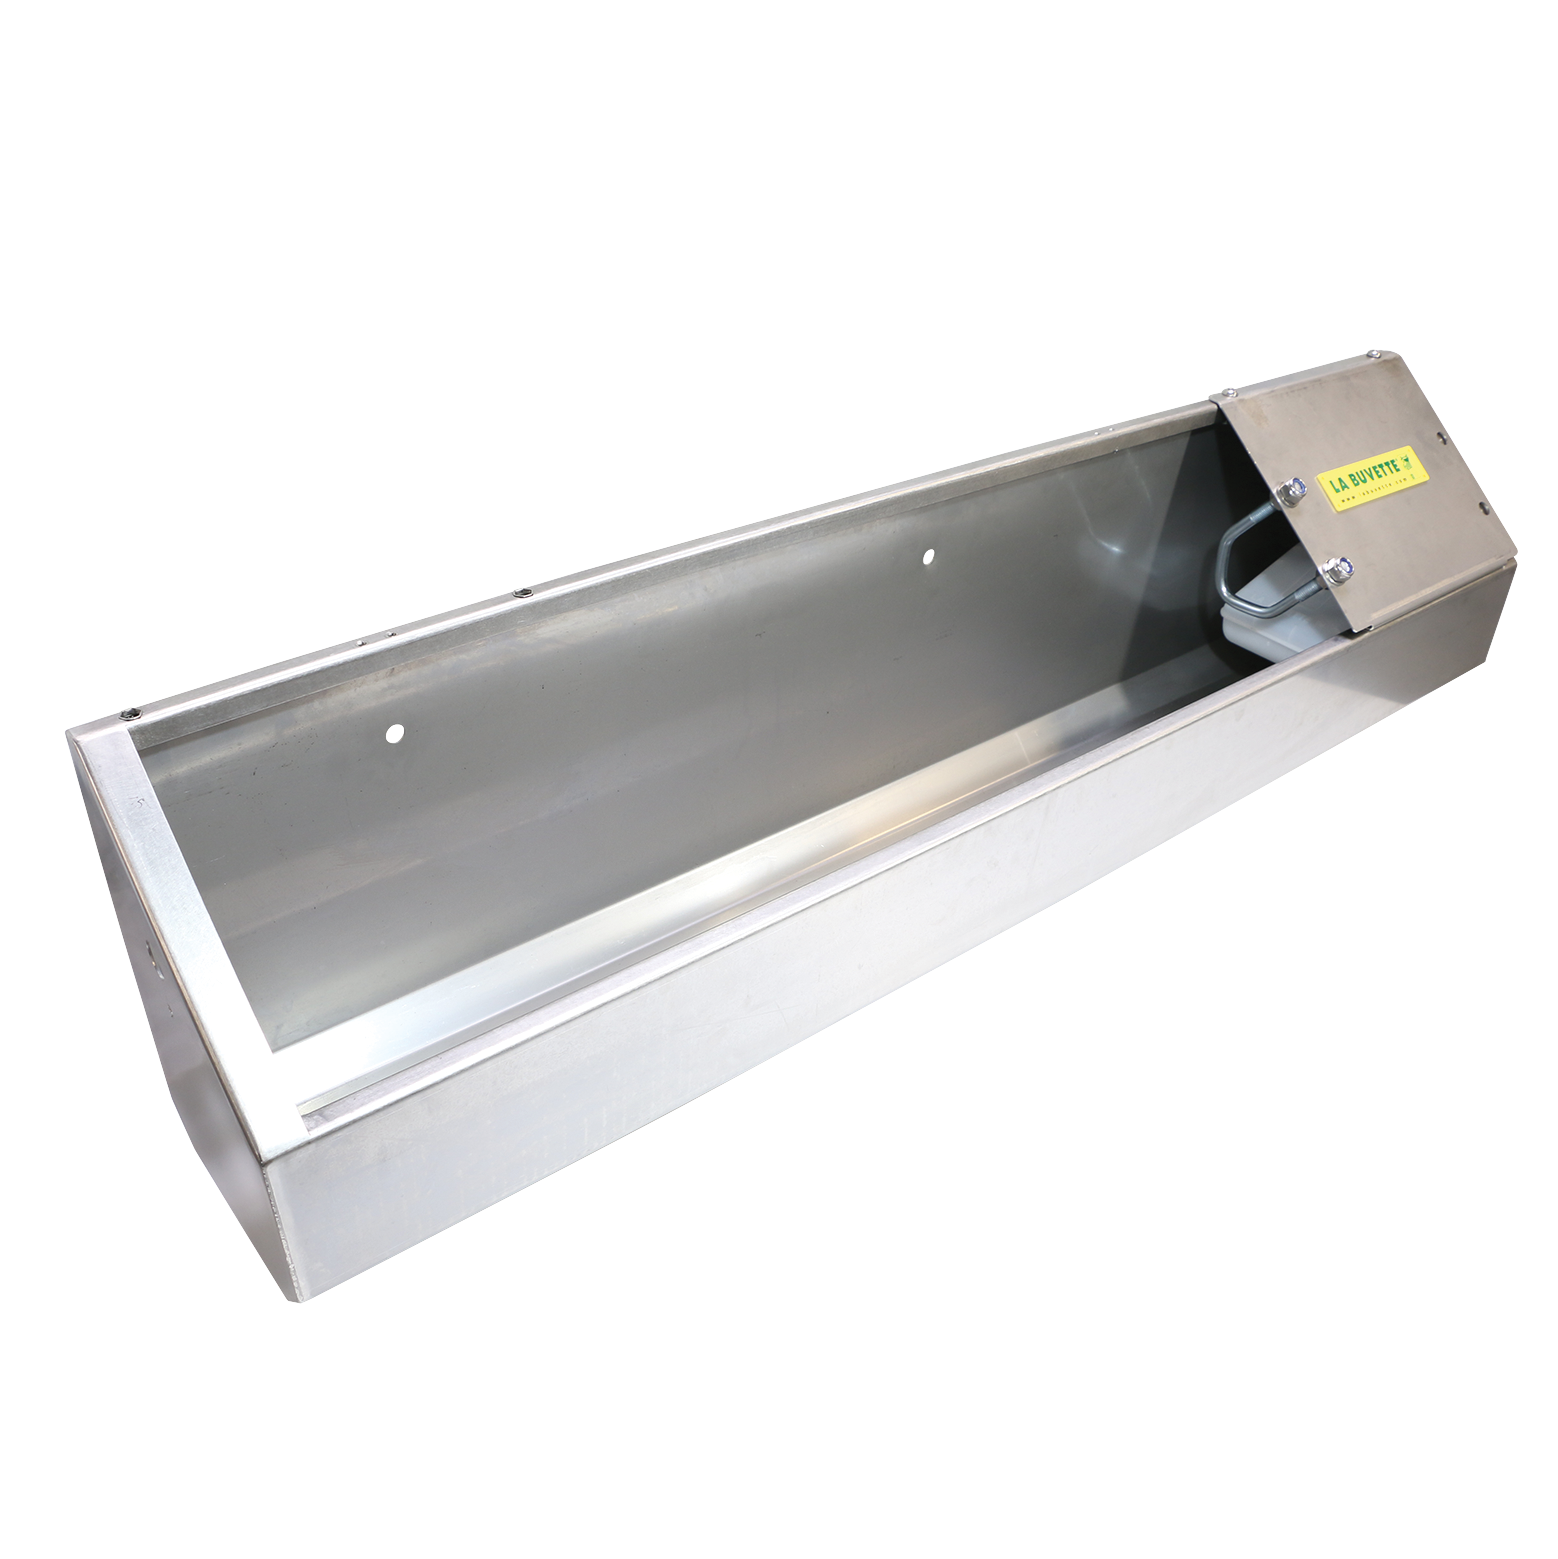 NEW OVICAP INOX 120 stainless steel TROUGH